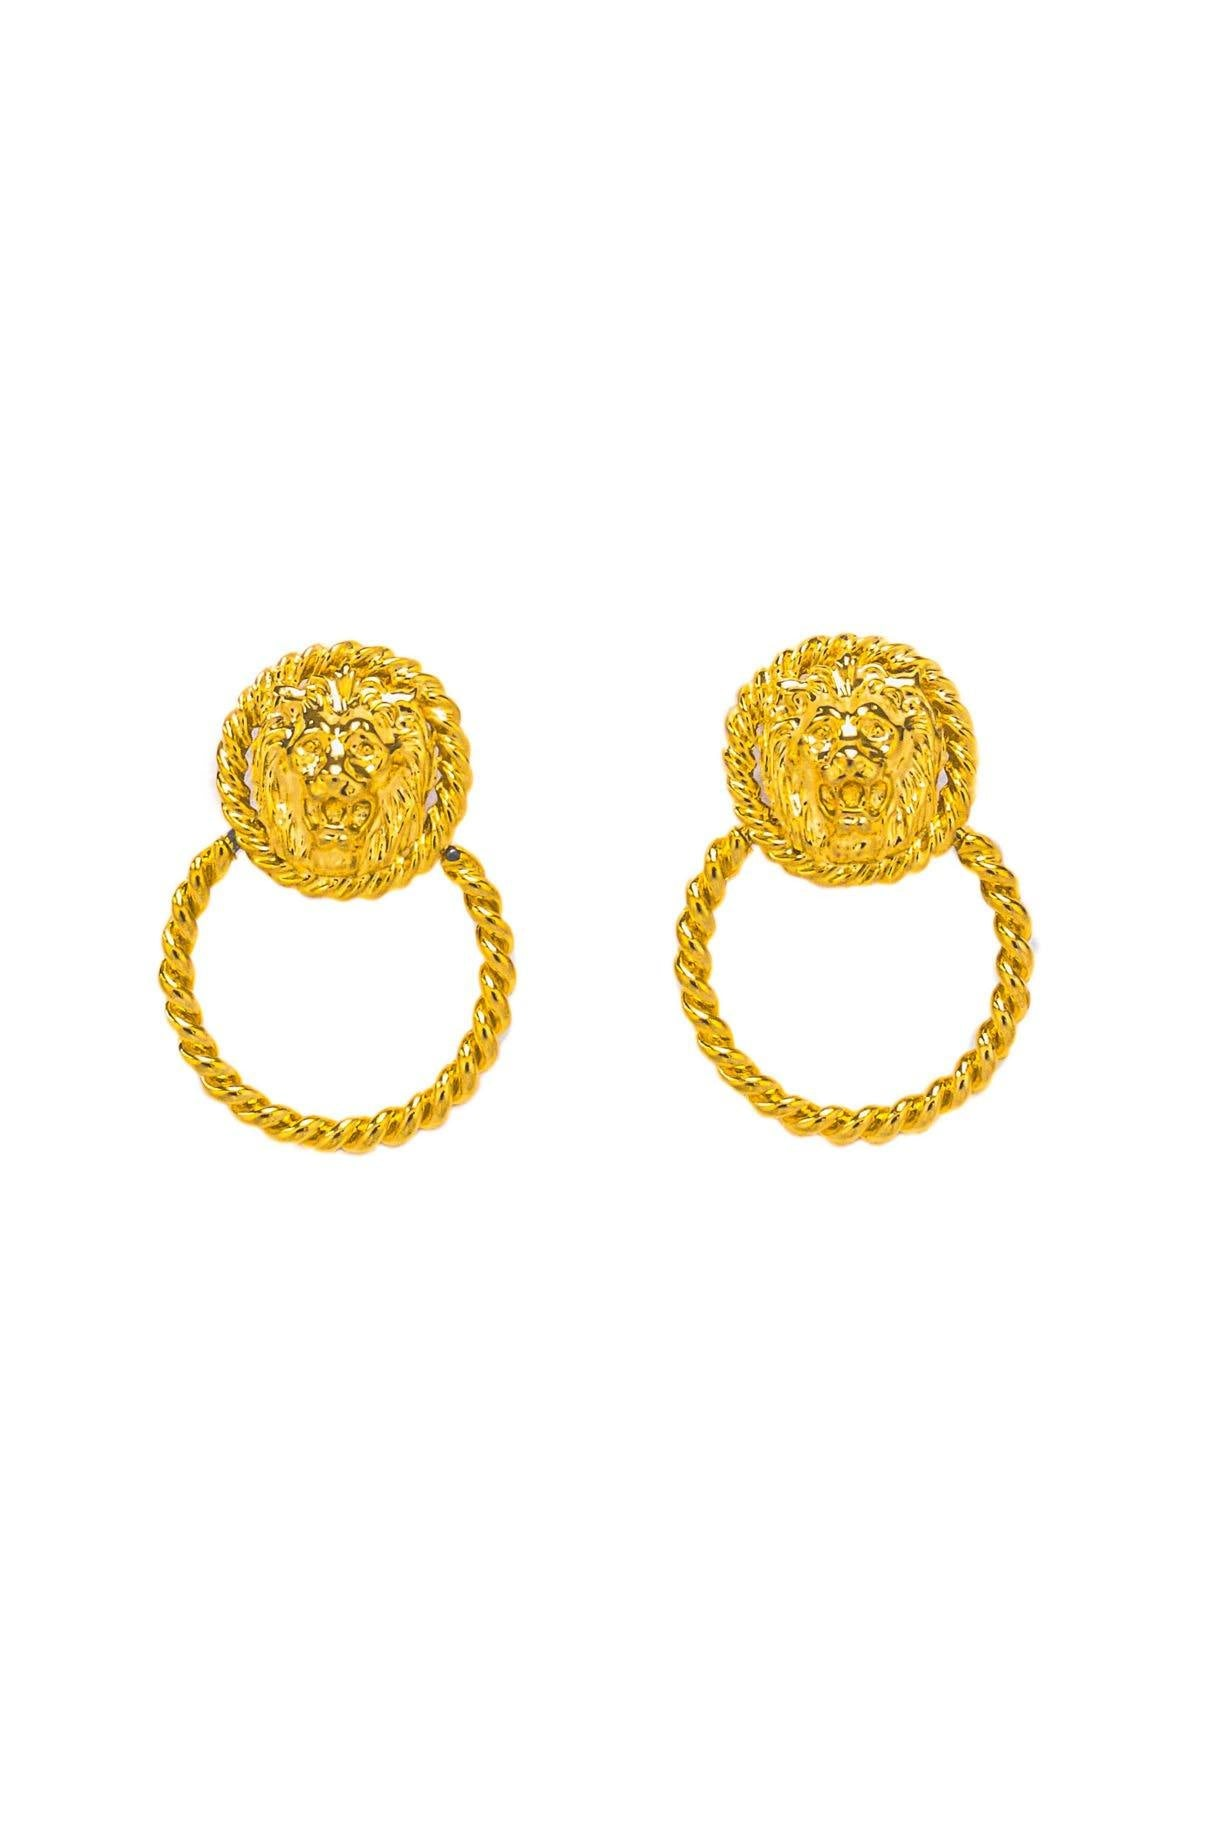 Lion Door Knocker Clip-on Earrings - Sweet & Spark